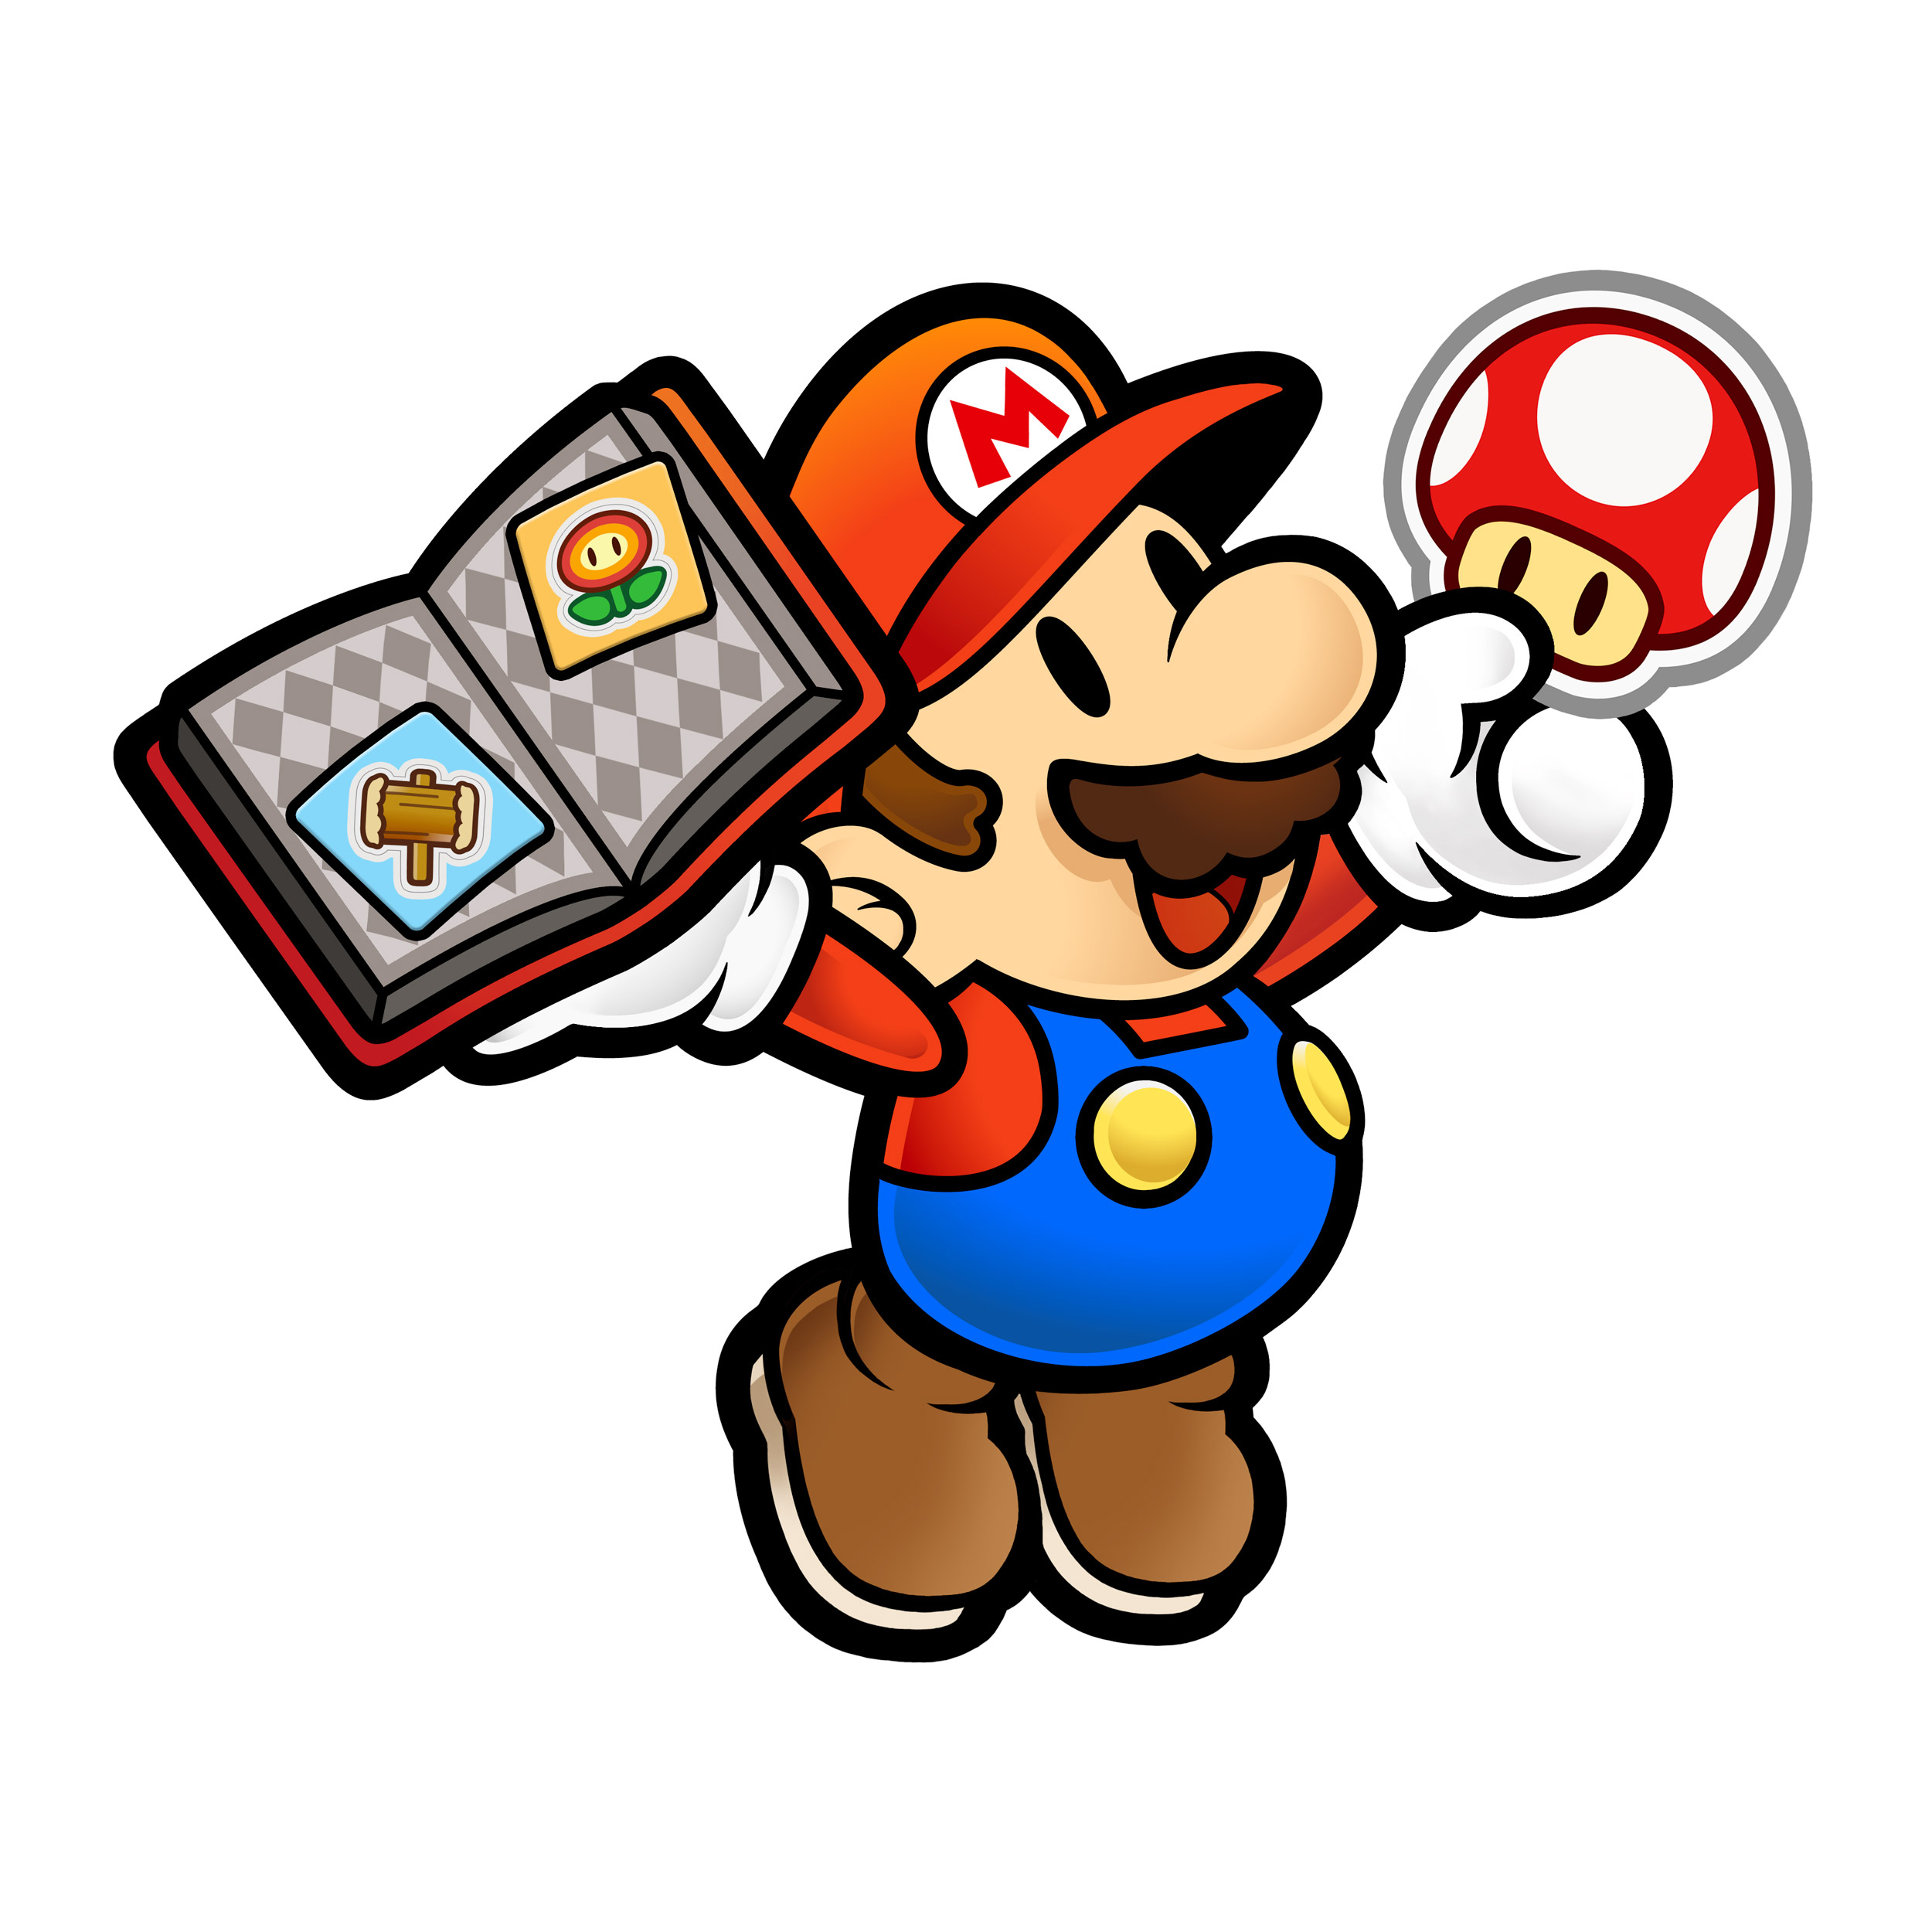 2500x2500 Covered Clipart Paper Mario